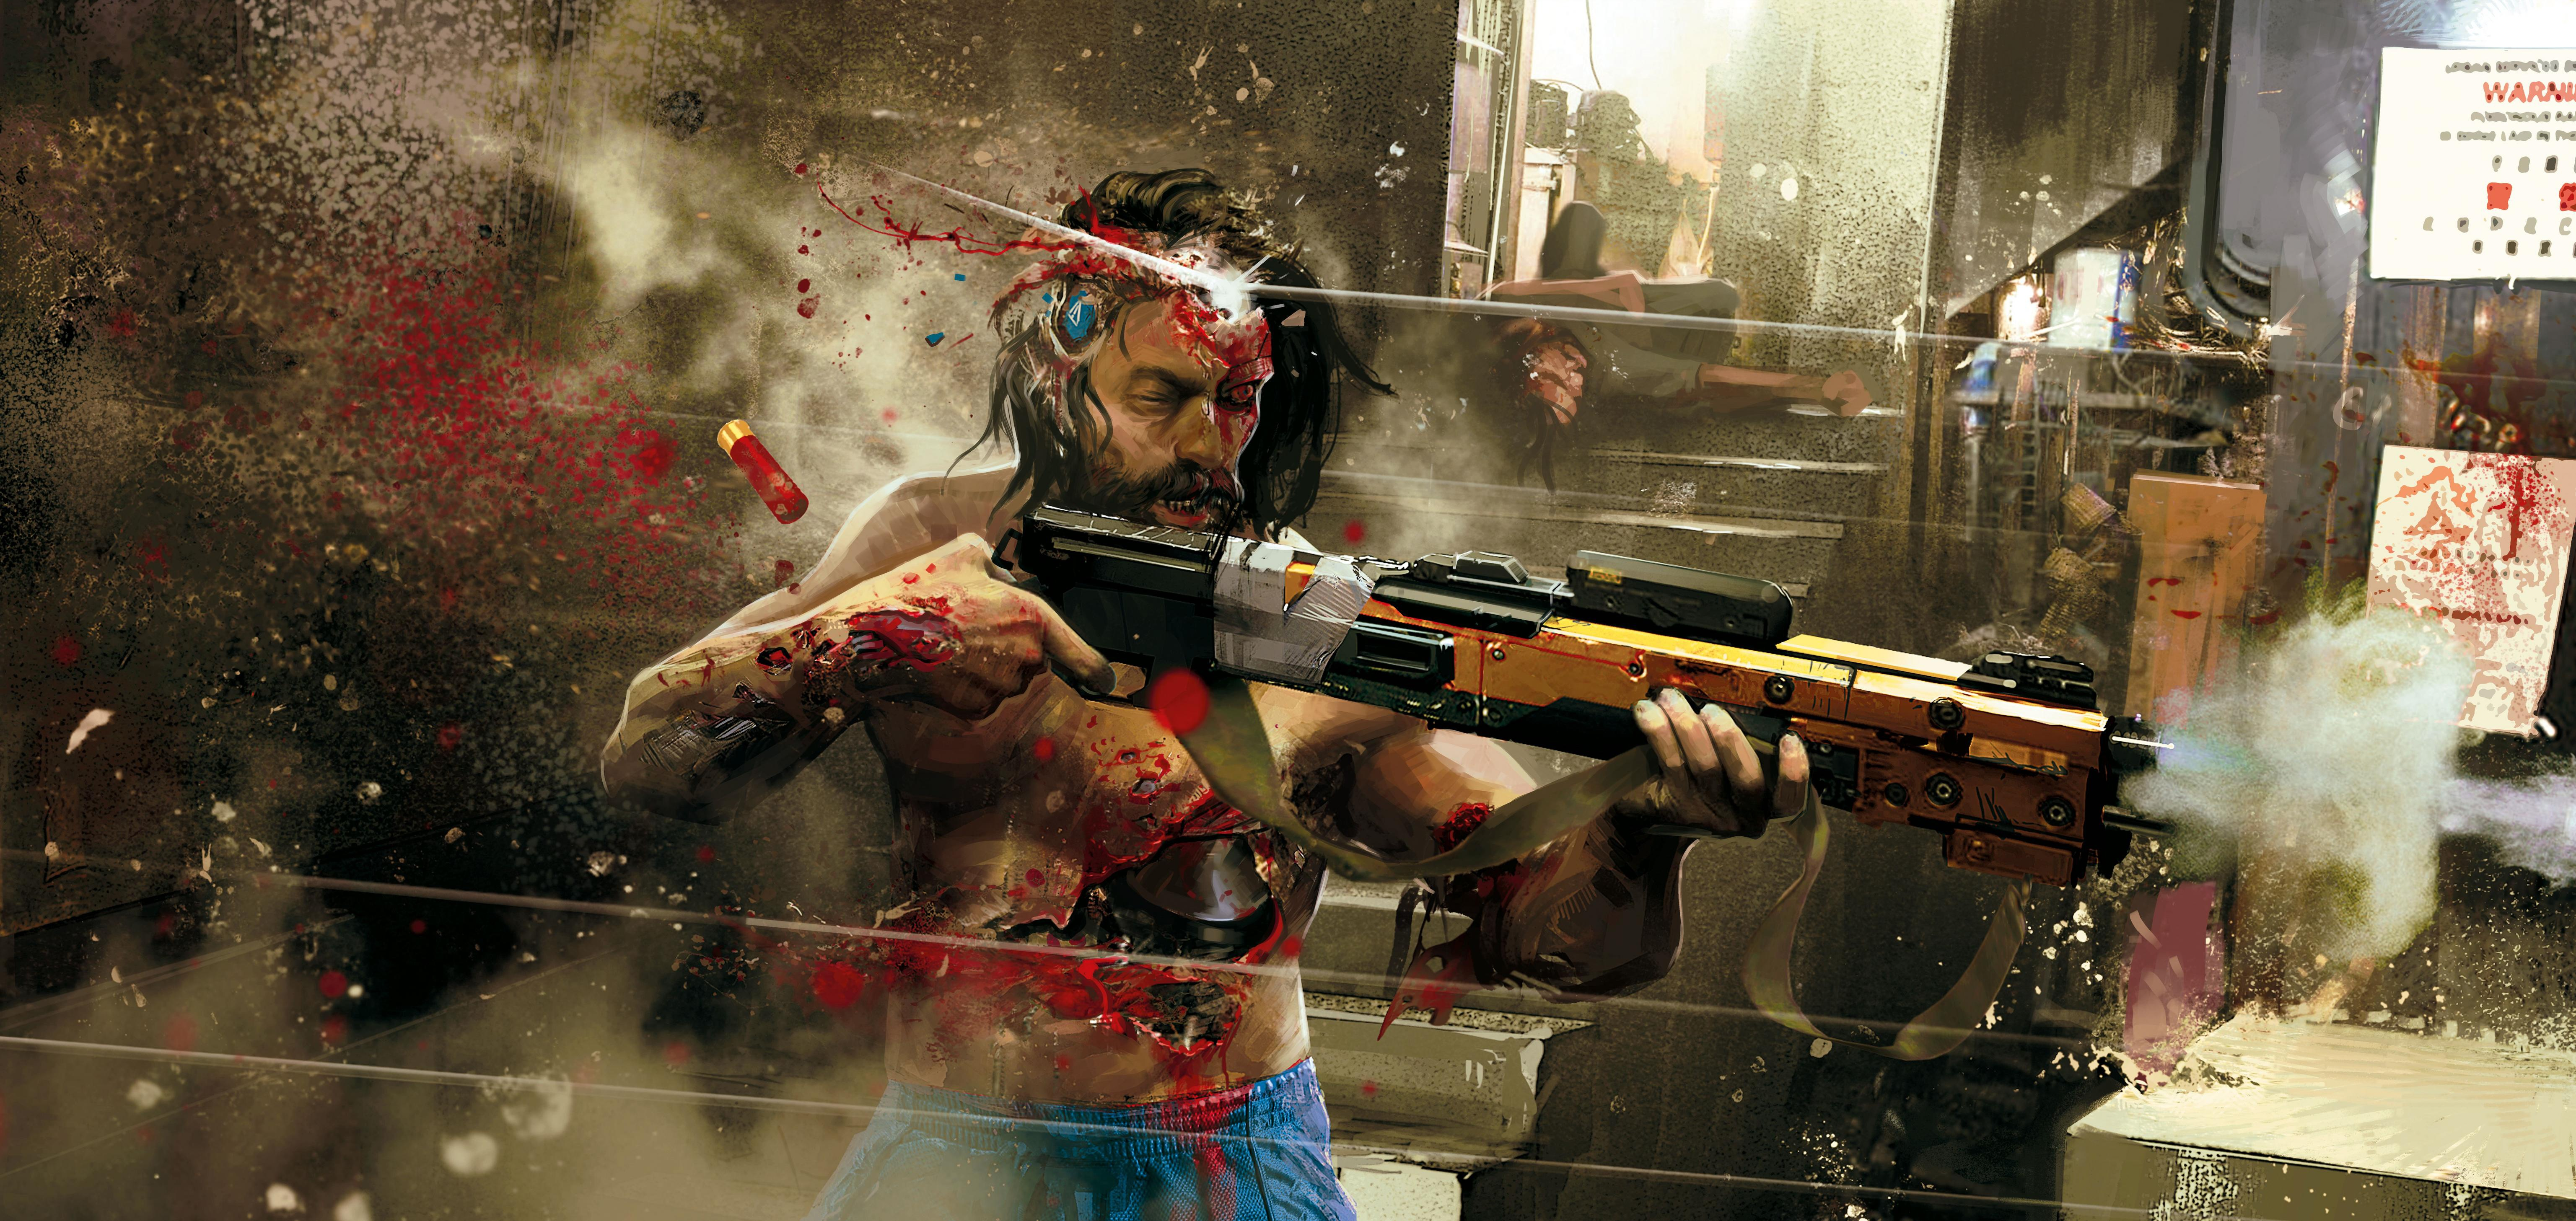 Enter the world of Cyberpunk 2077 a storydriven open world RPG of the dark future from CD PROJEKT RED creators of The Witcher series of games